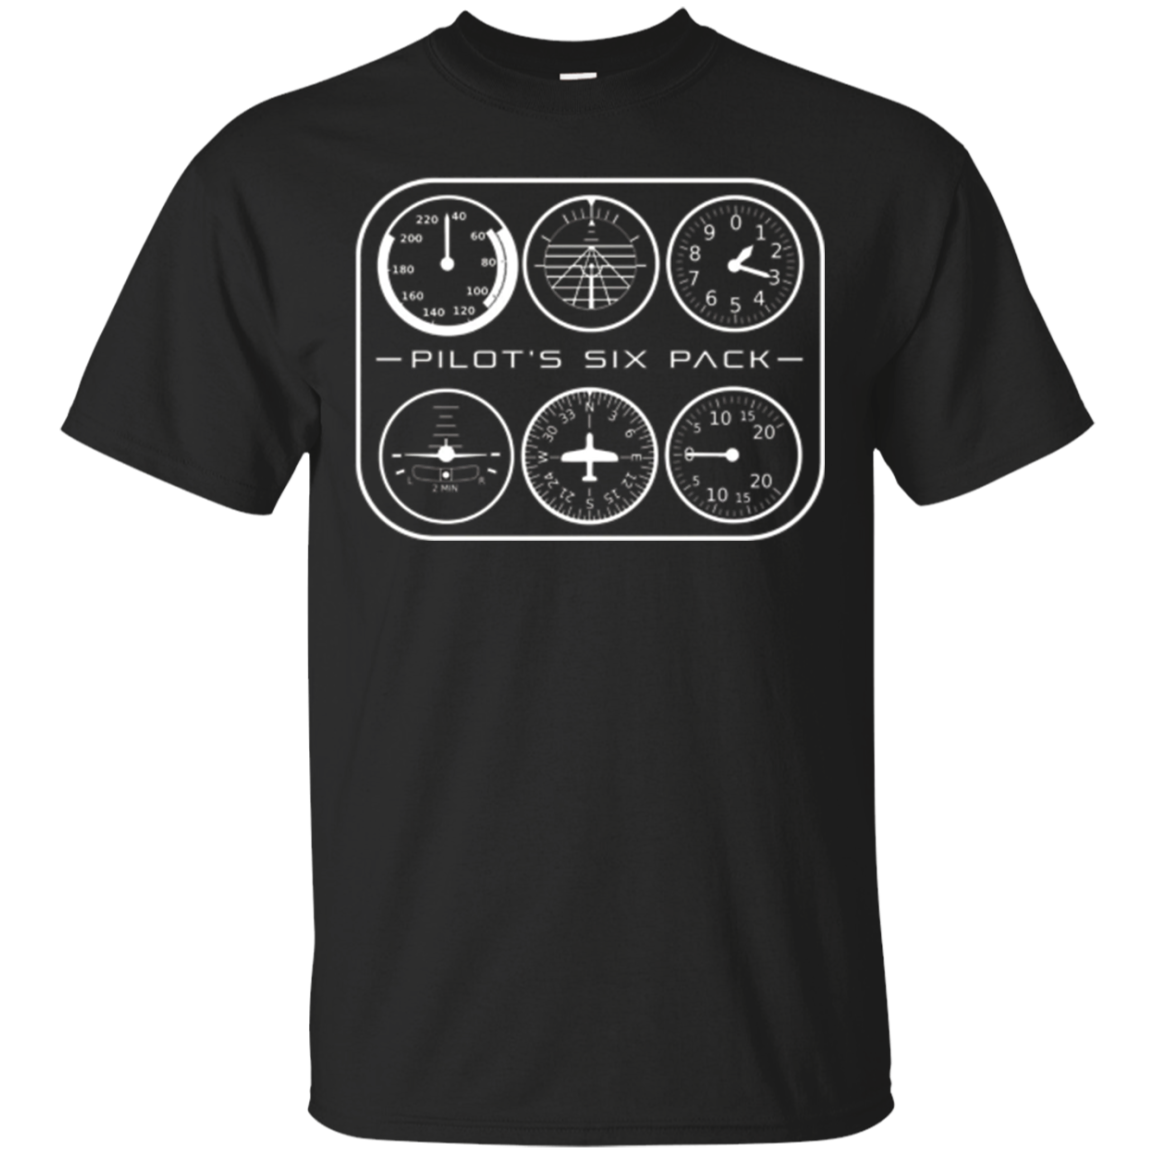 Pilot's Six Pack T-Shirt | Flight Instruments Aviation Shirt